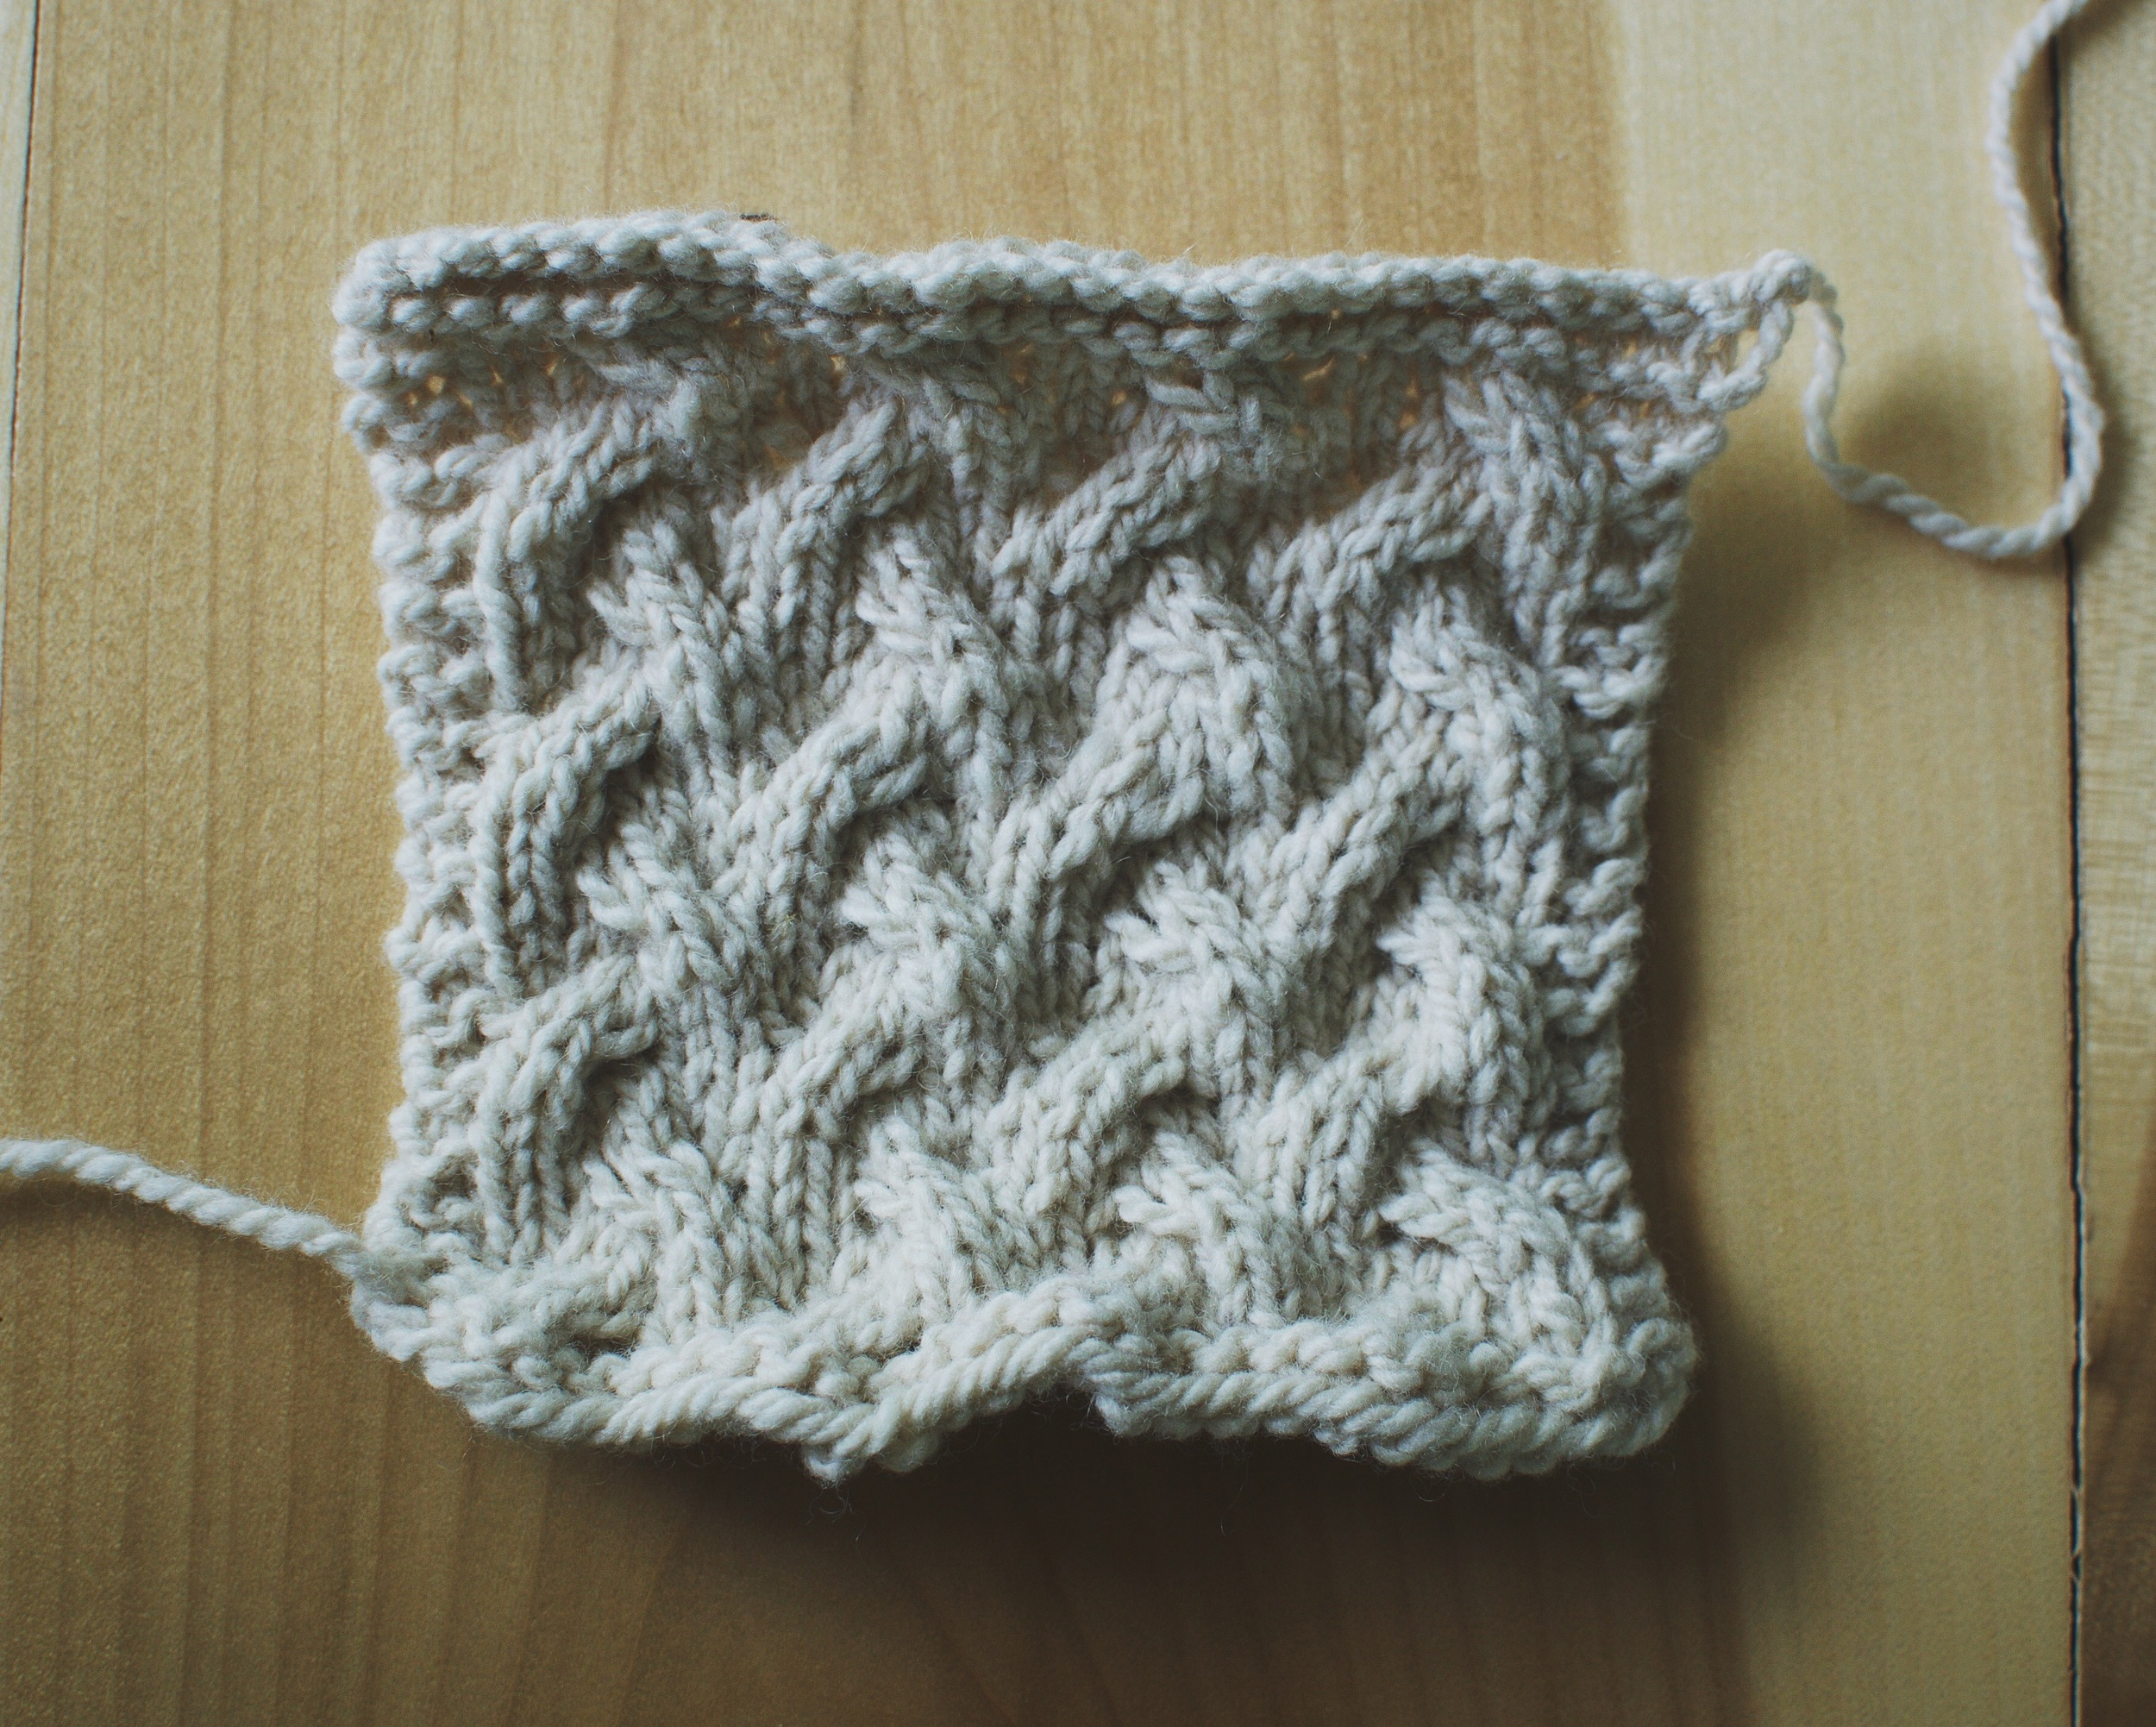 My swatch  BEFORE  blocking.